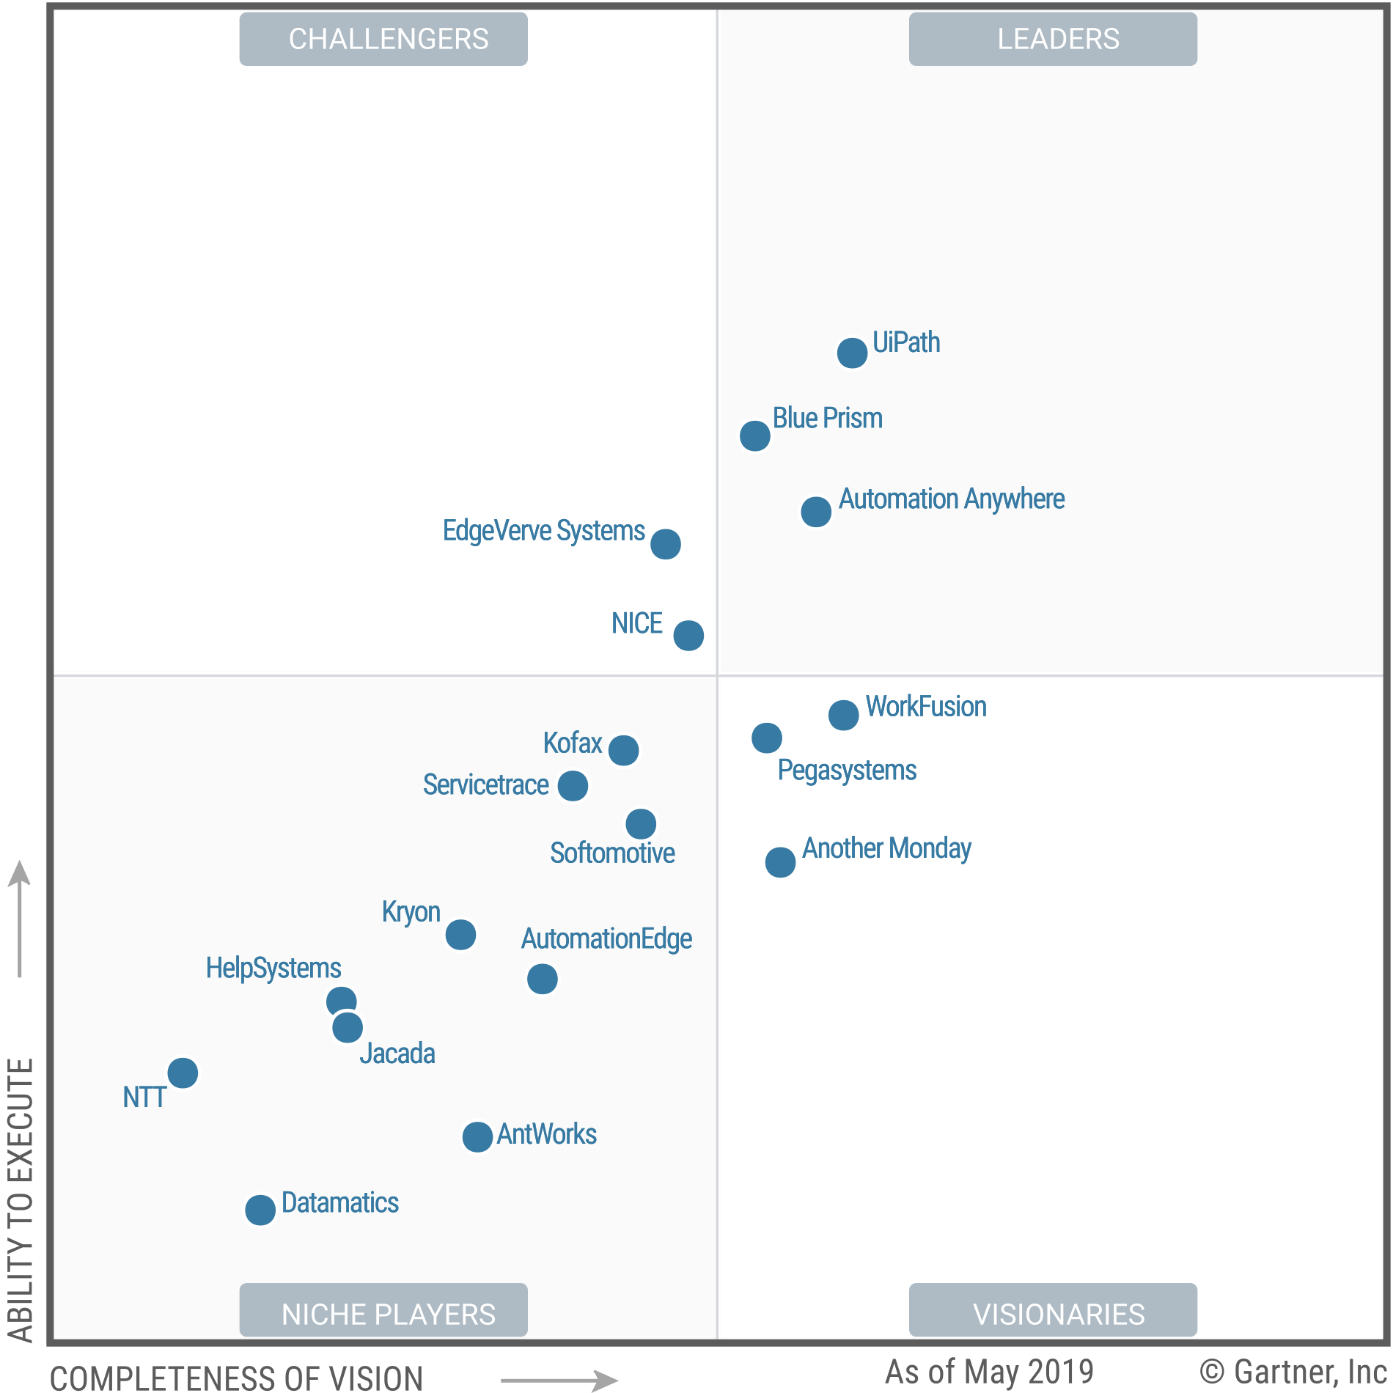 Magic Quadrant for Robotic Process Automation Software